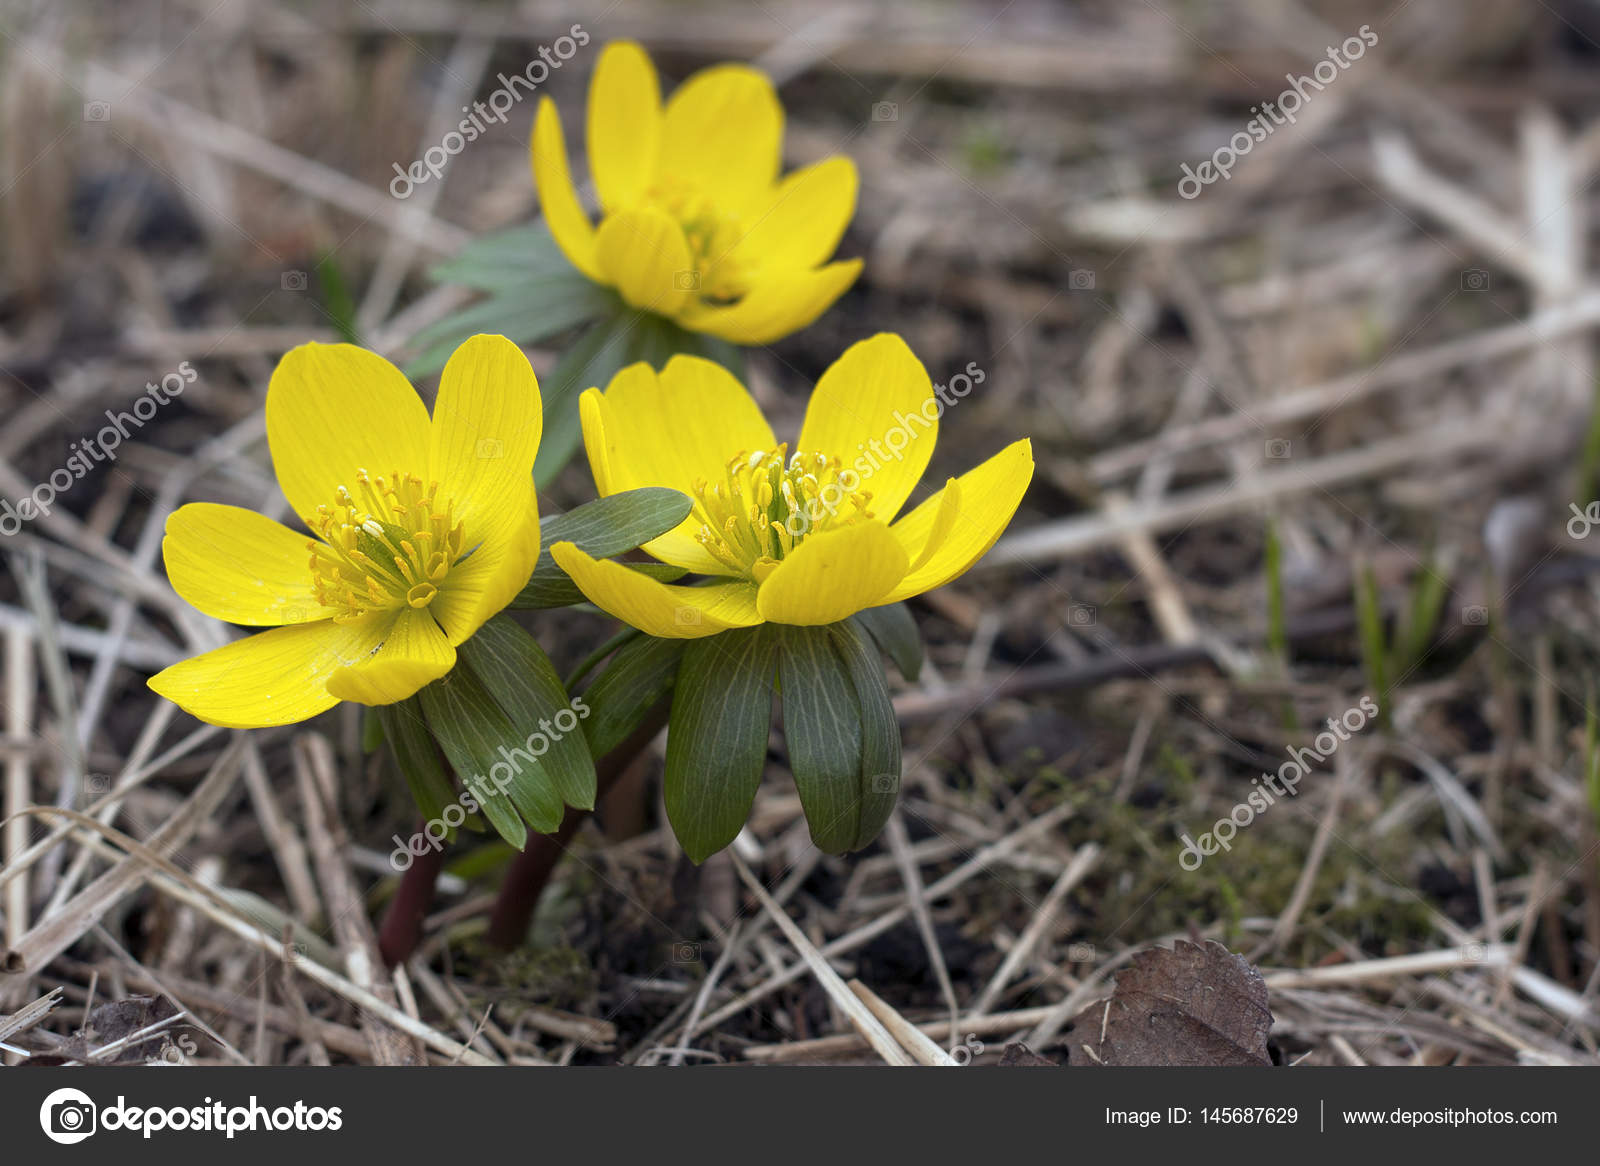 Winter Aconite First Spring Flowers Stock Photo